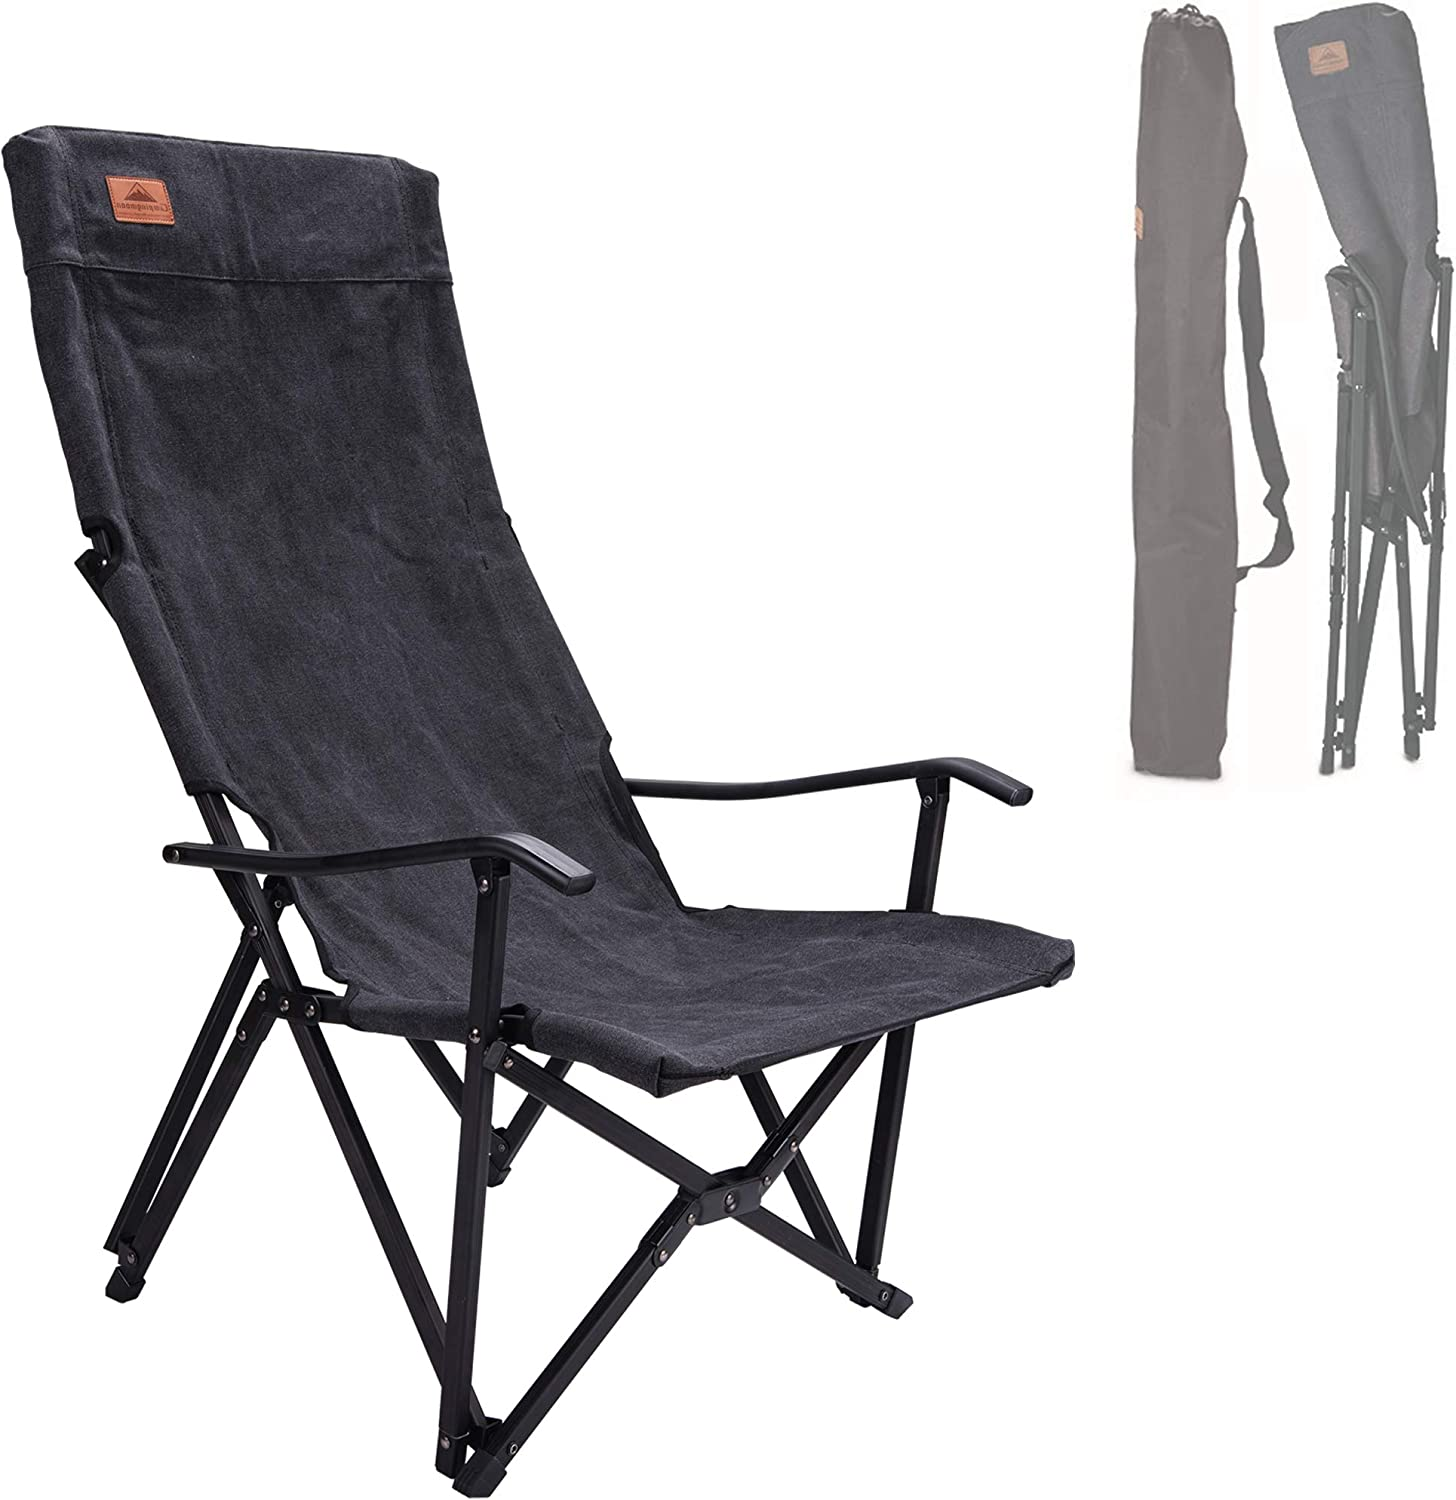 Price reduction CAMPINGMOON Foldable Cotton Canvas Camping Chair S Back Low High Gorgeous